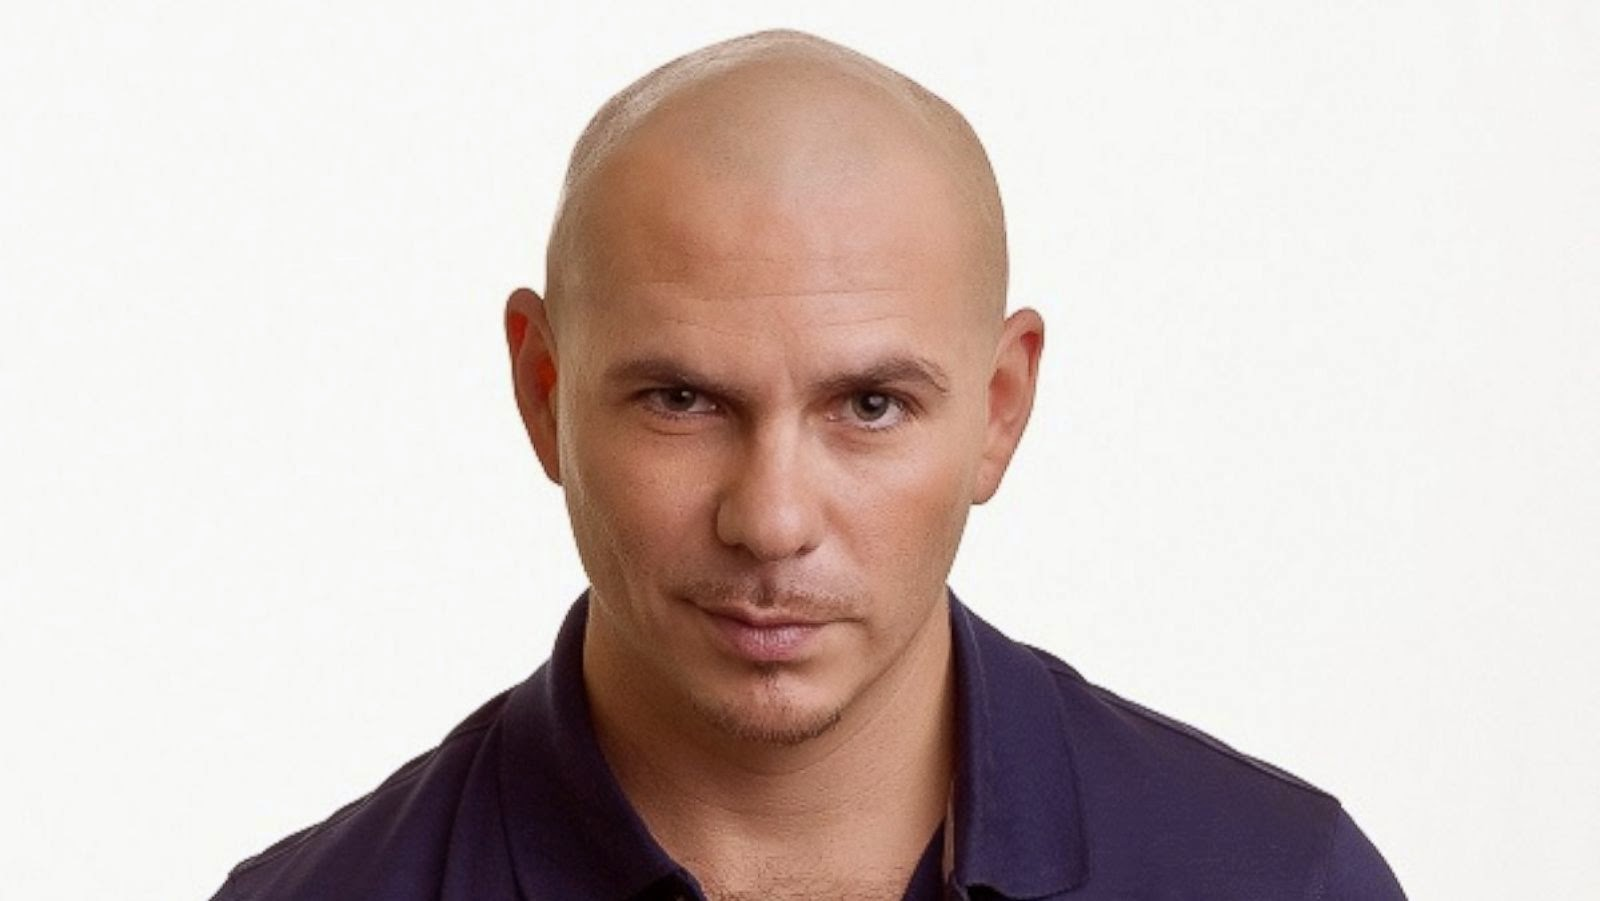 fotos de pitbull 14